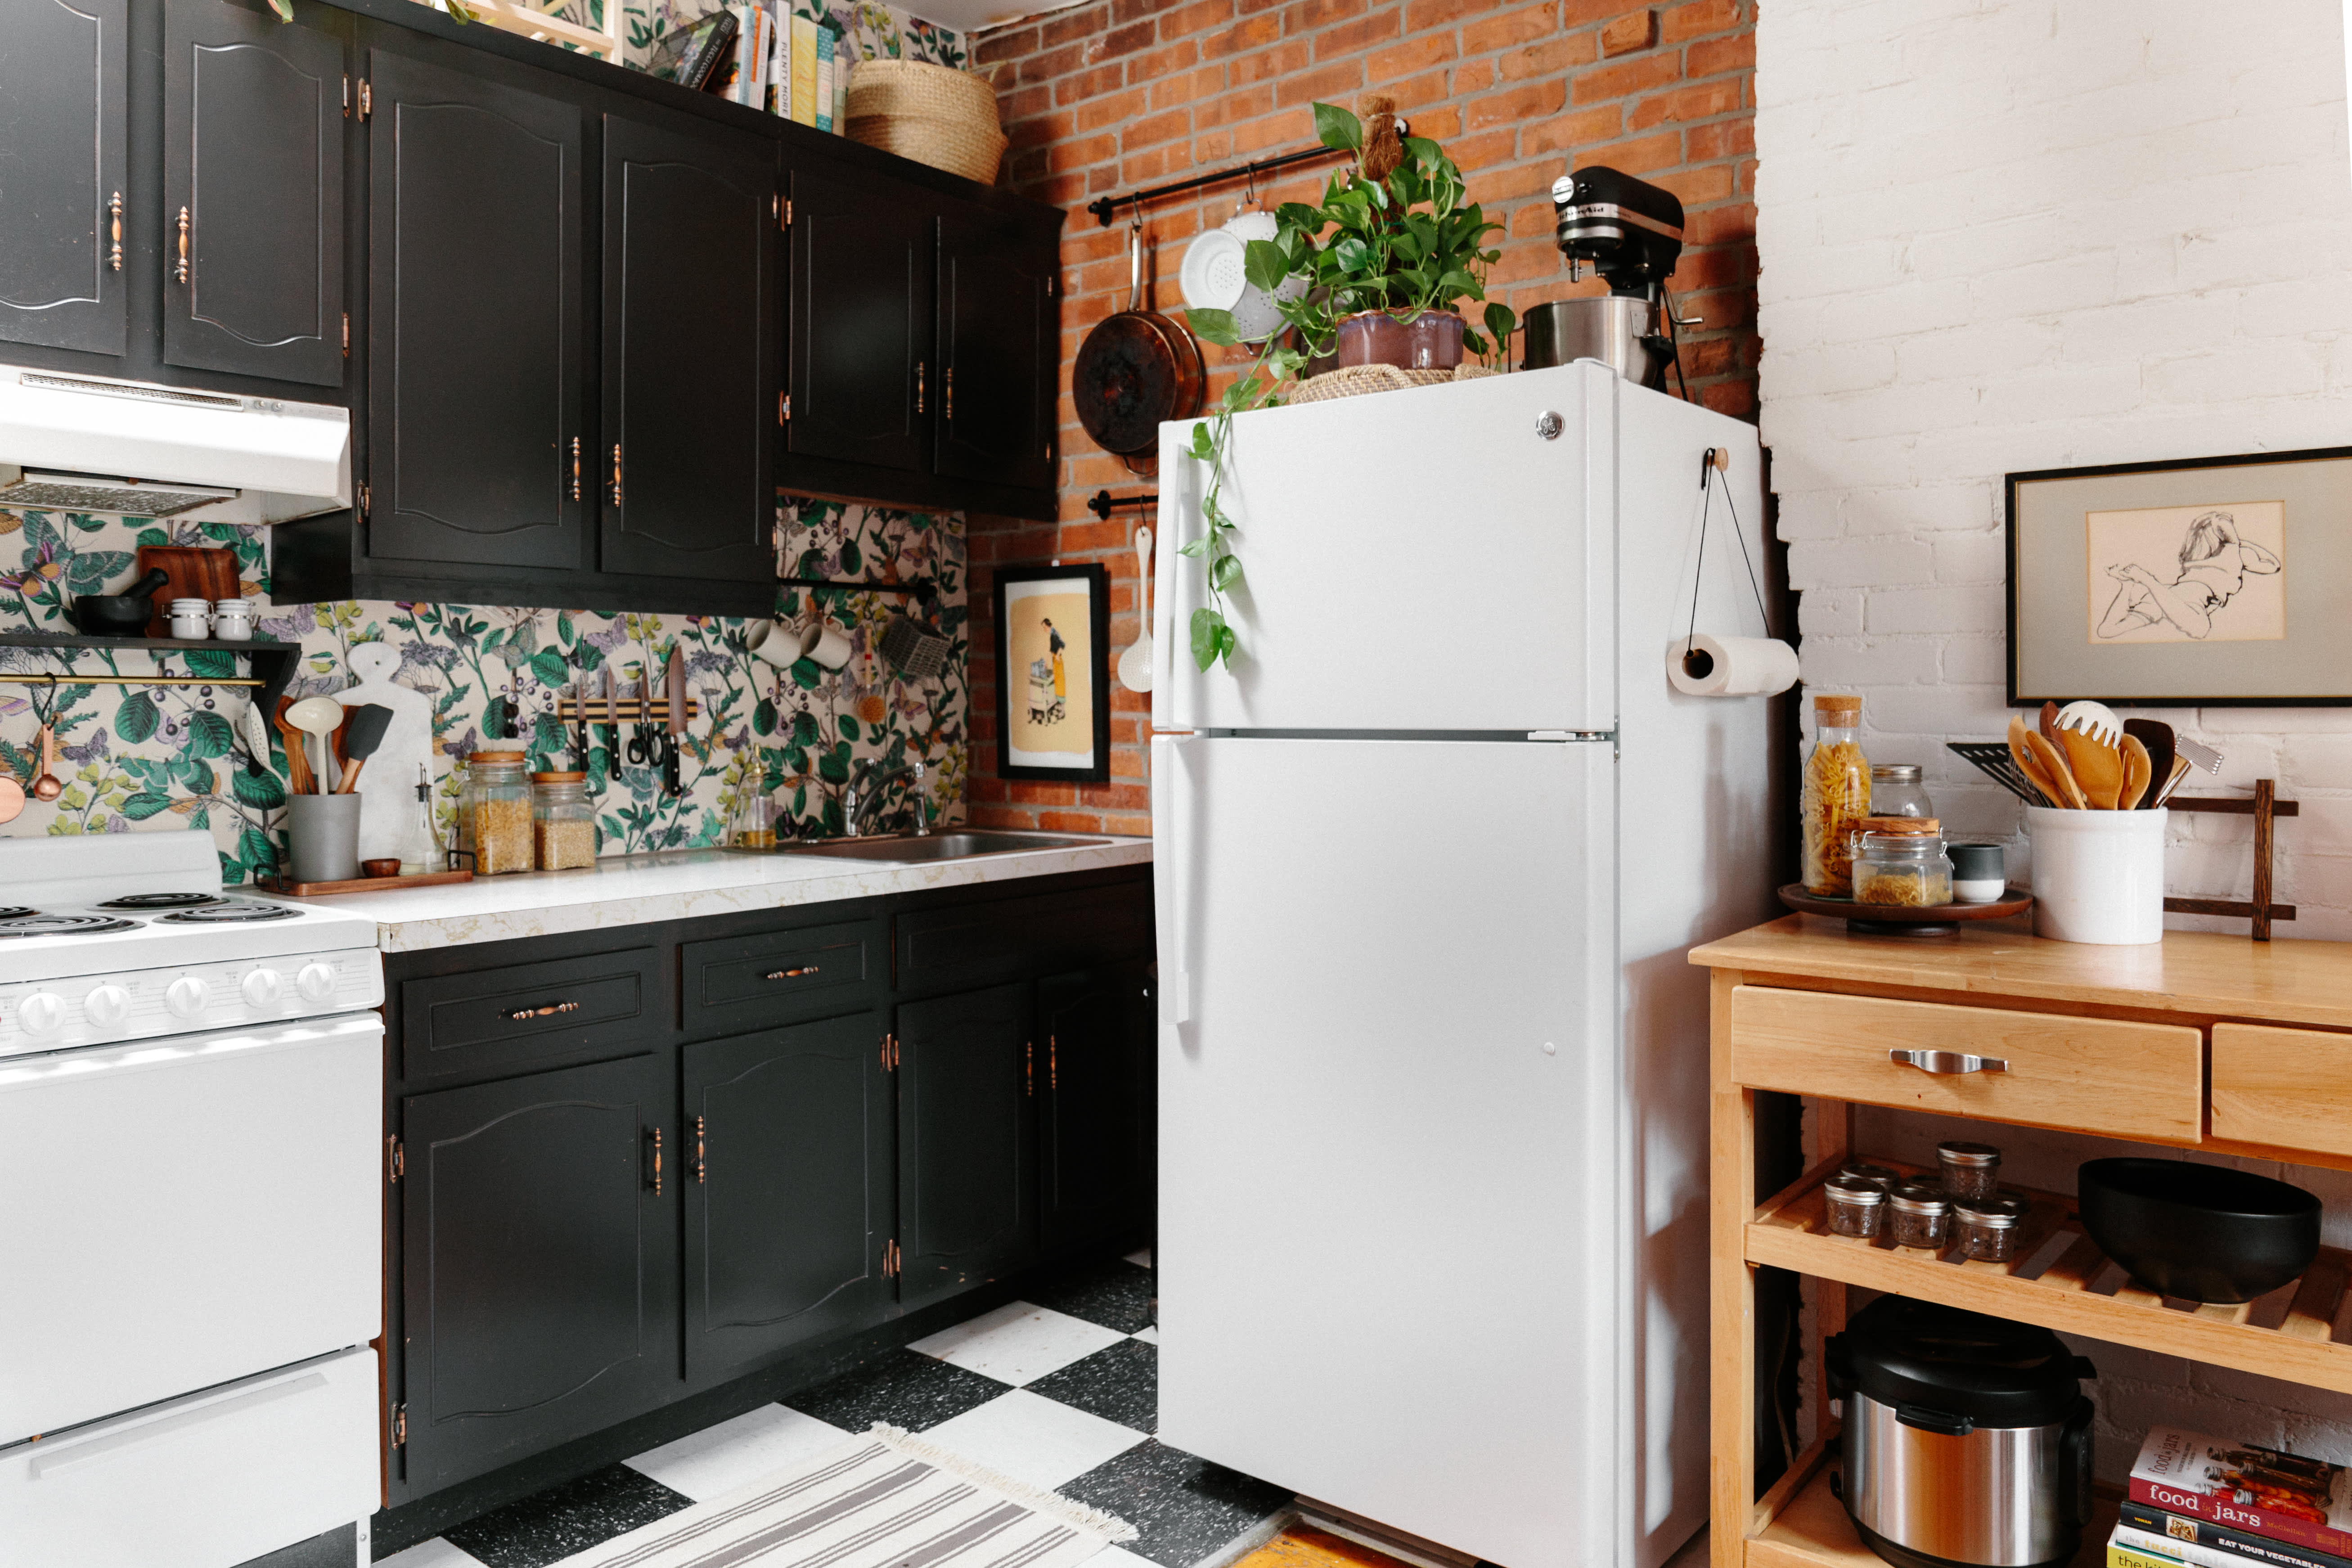 $300 Later, This Rental Kitchen Is No Longer Recognizable (Image credit:  Anna Spaller)